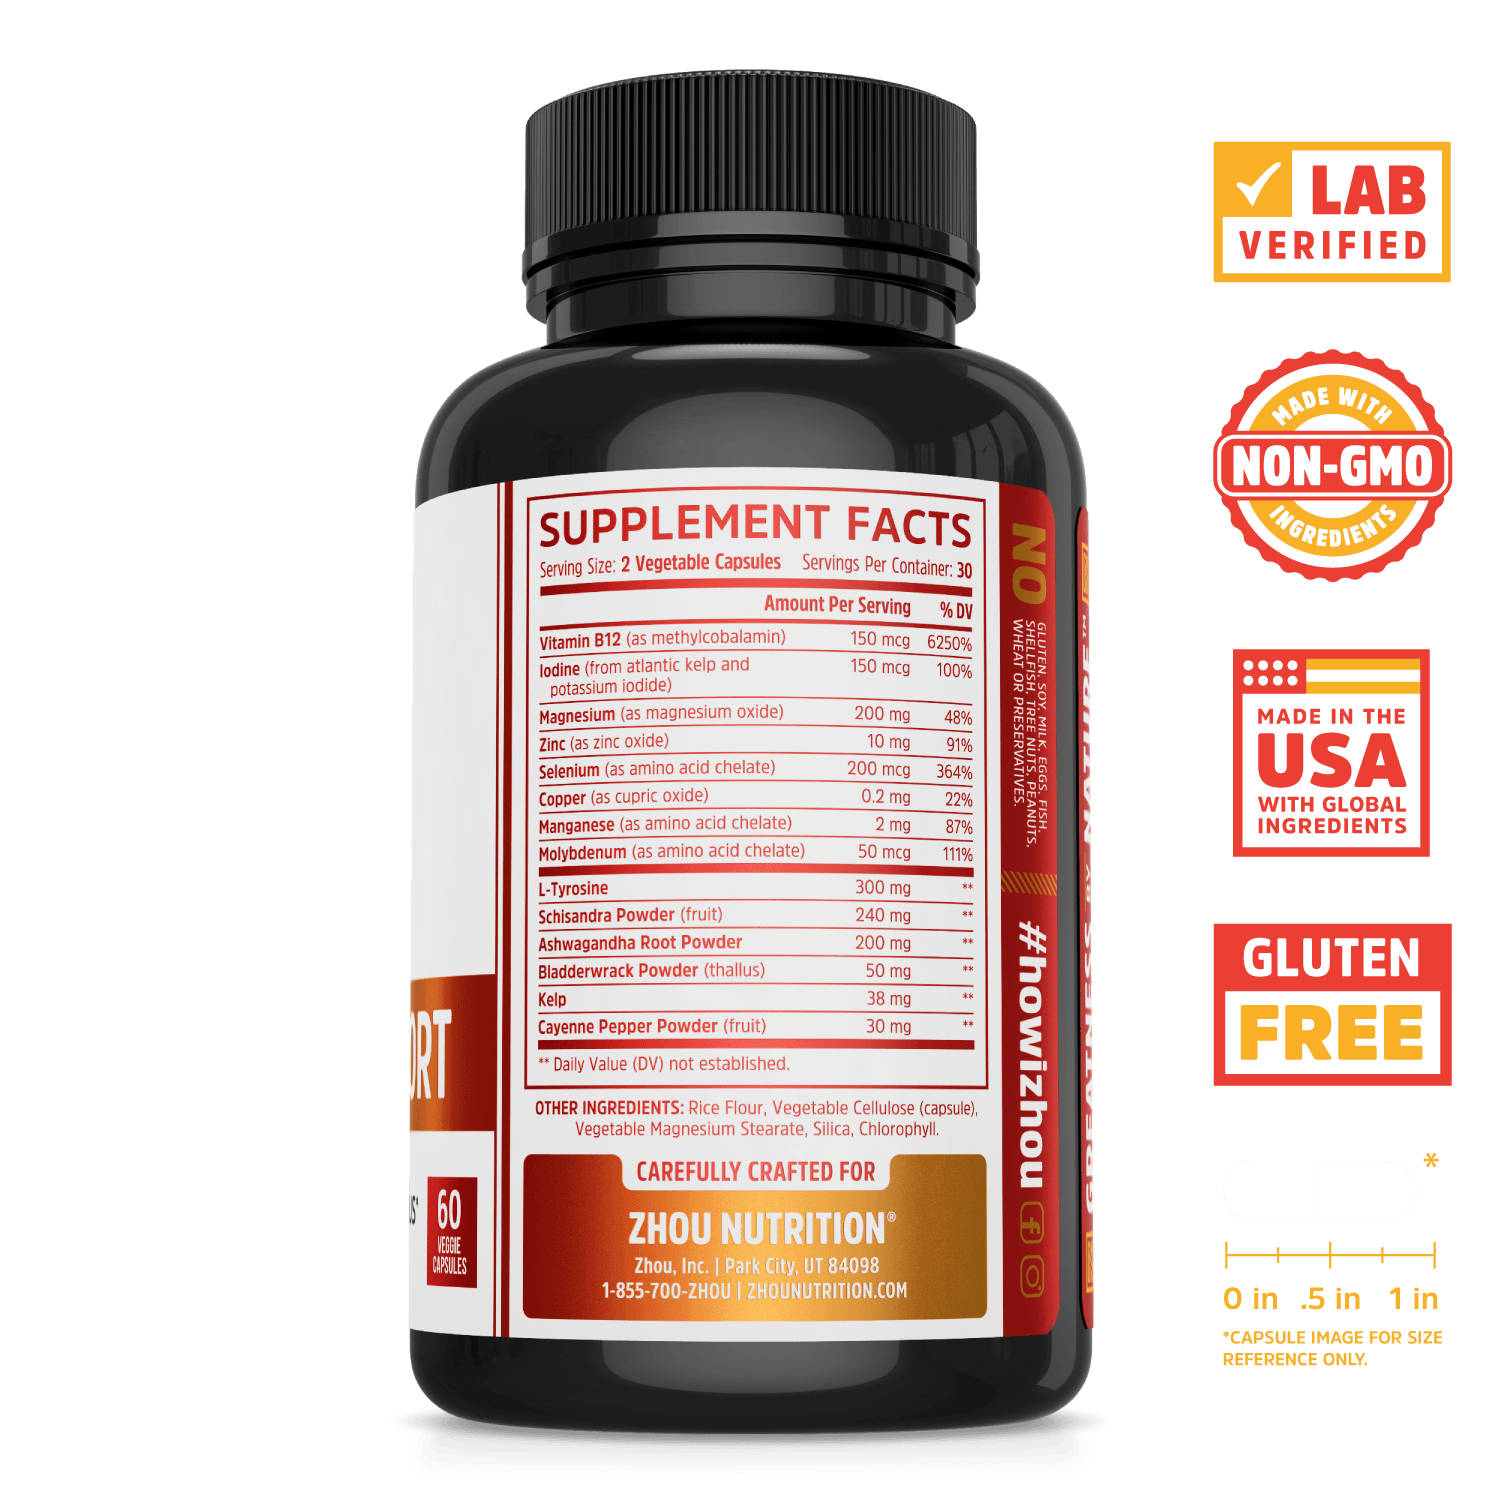 Zhou Nutrition Thyroid Support Complex. Bottle side. Lab verified, made with non-GMO ingredients, made in the USA with global ingredients, gluten free.